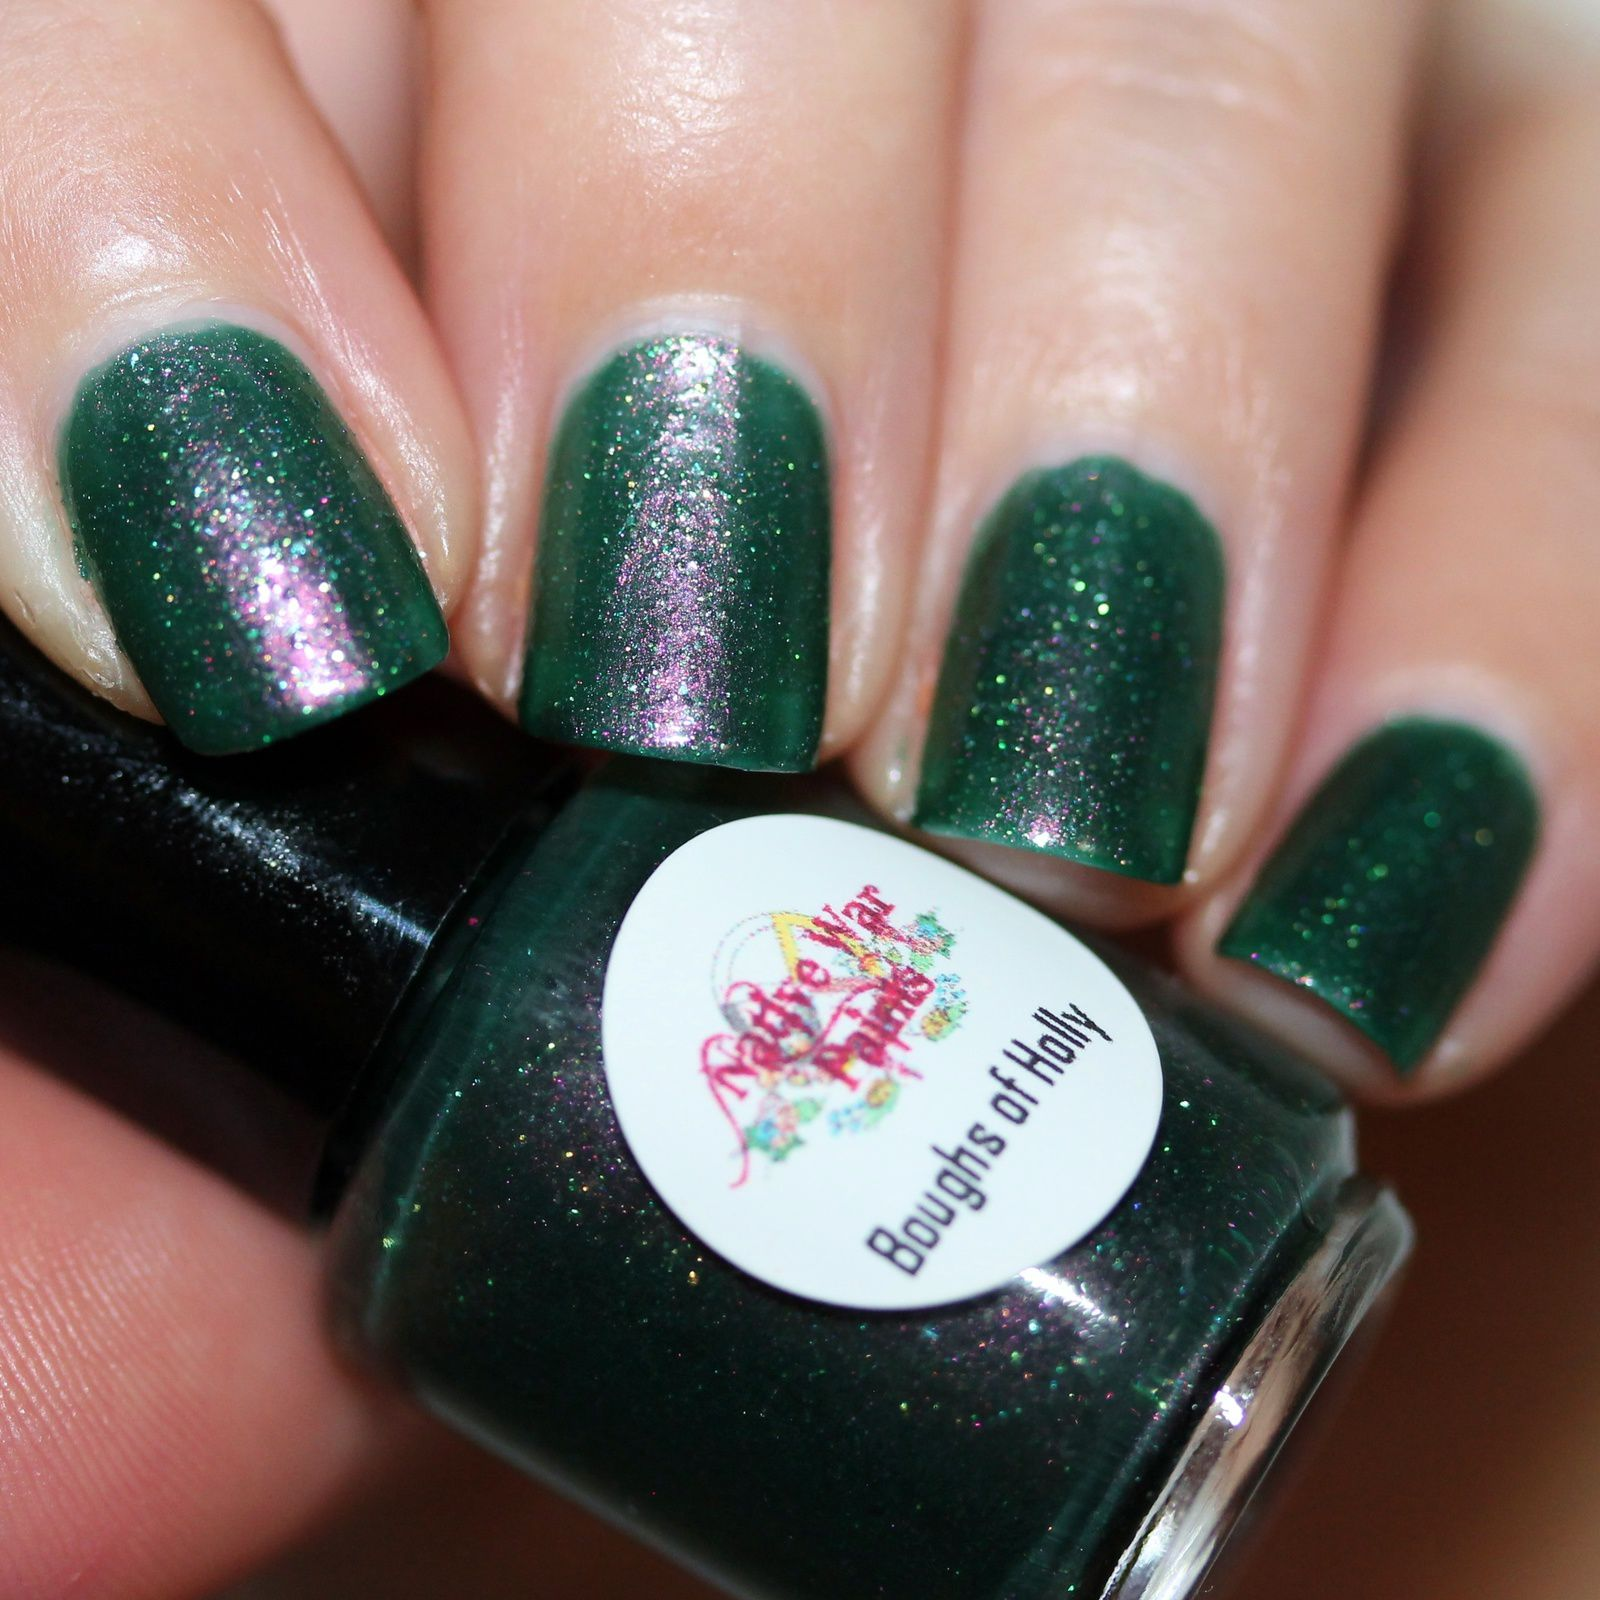 NWP Boughs of Holly (3 coats, no top coat)